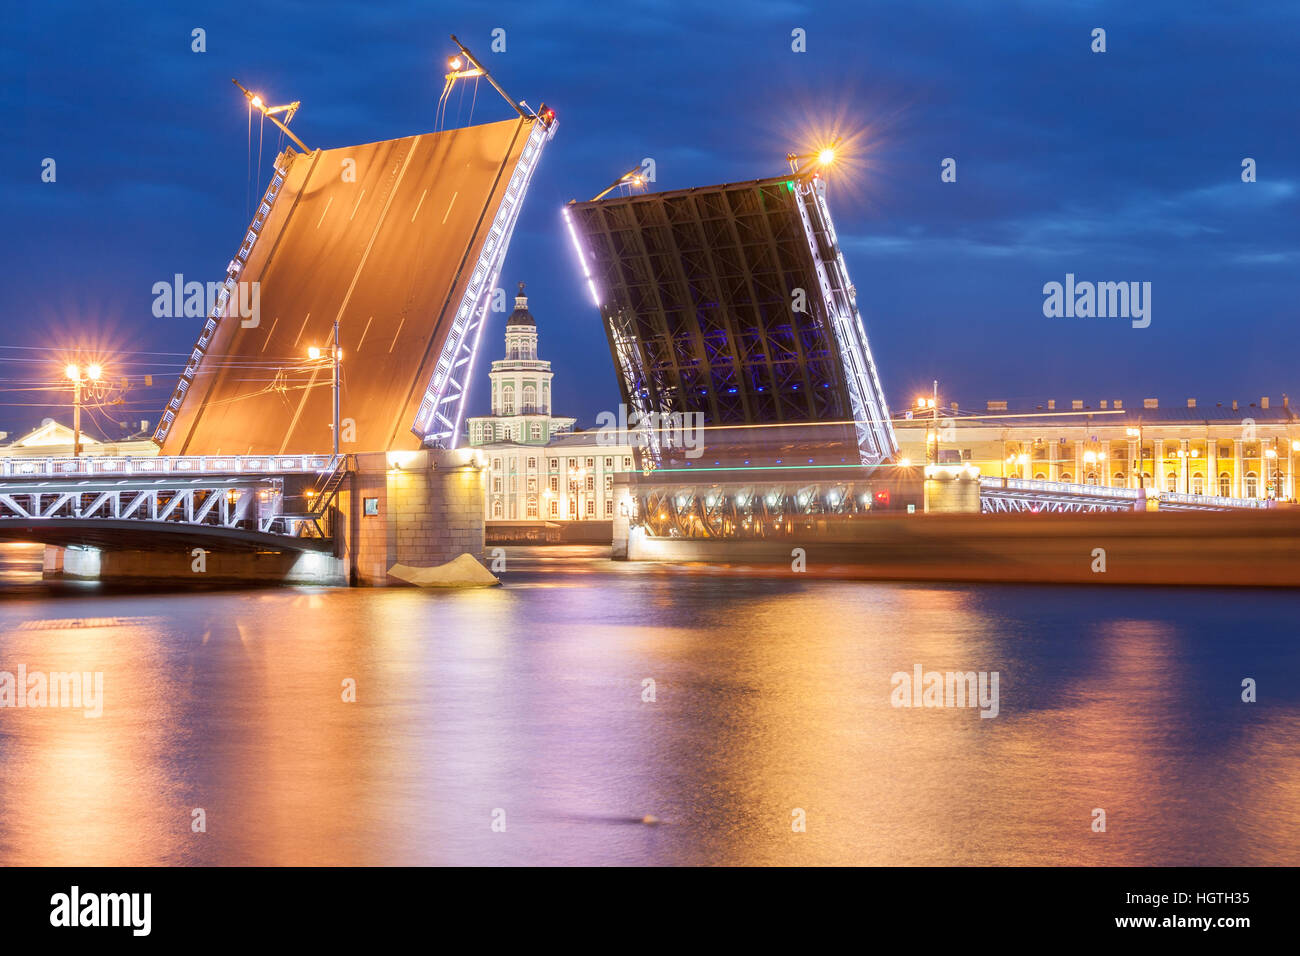 The raised Palace bridge at white nights in the city of St.-Petersburg Stock Photo